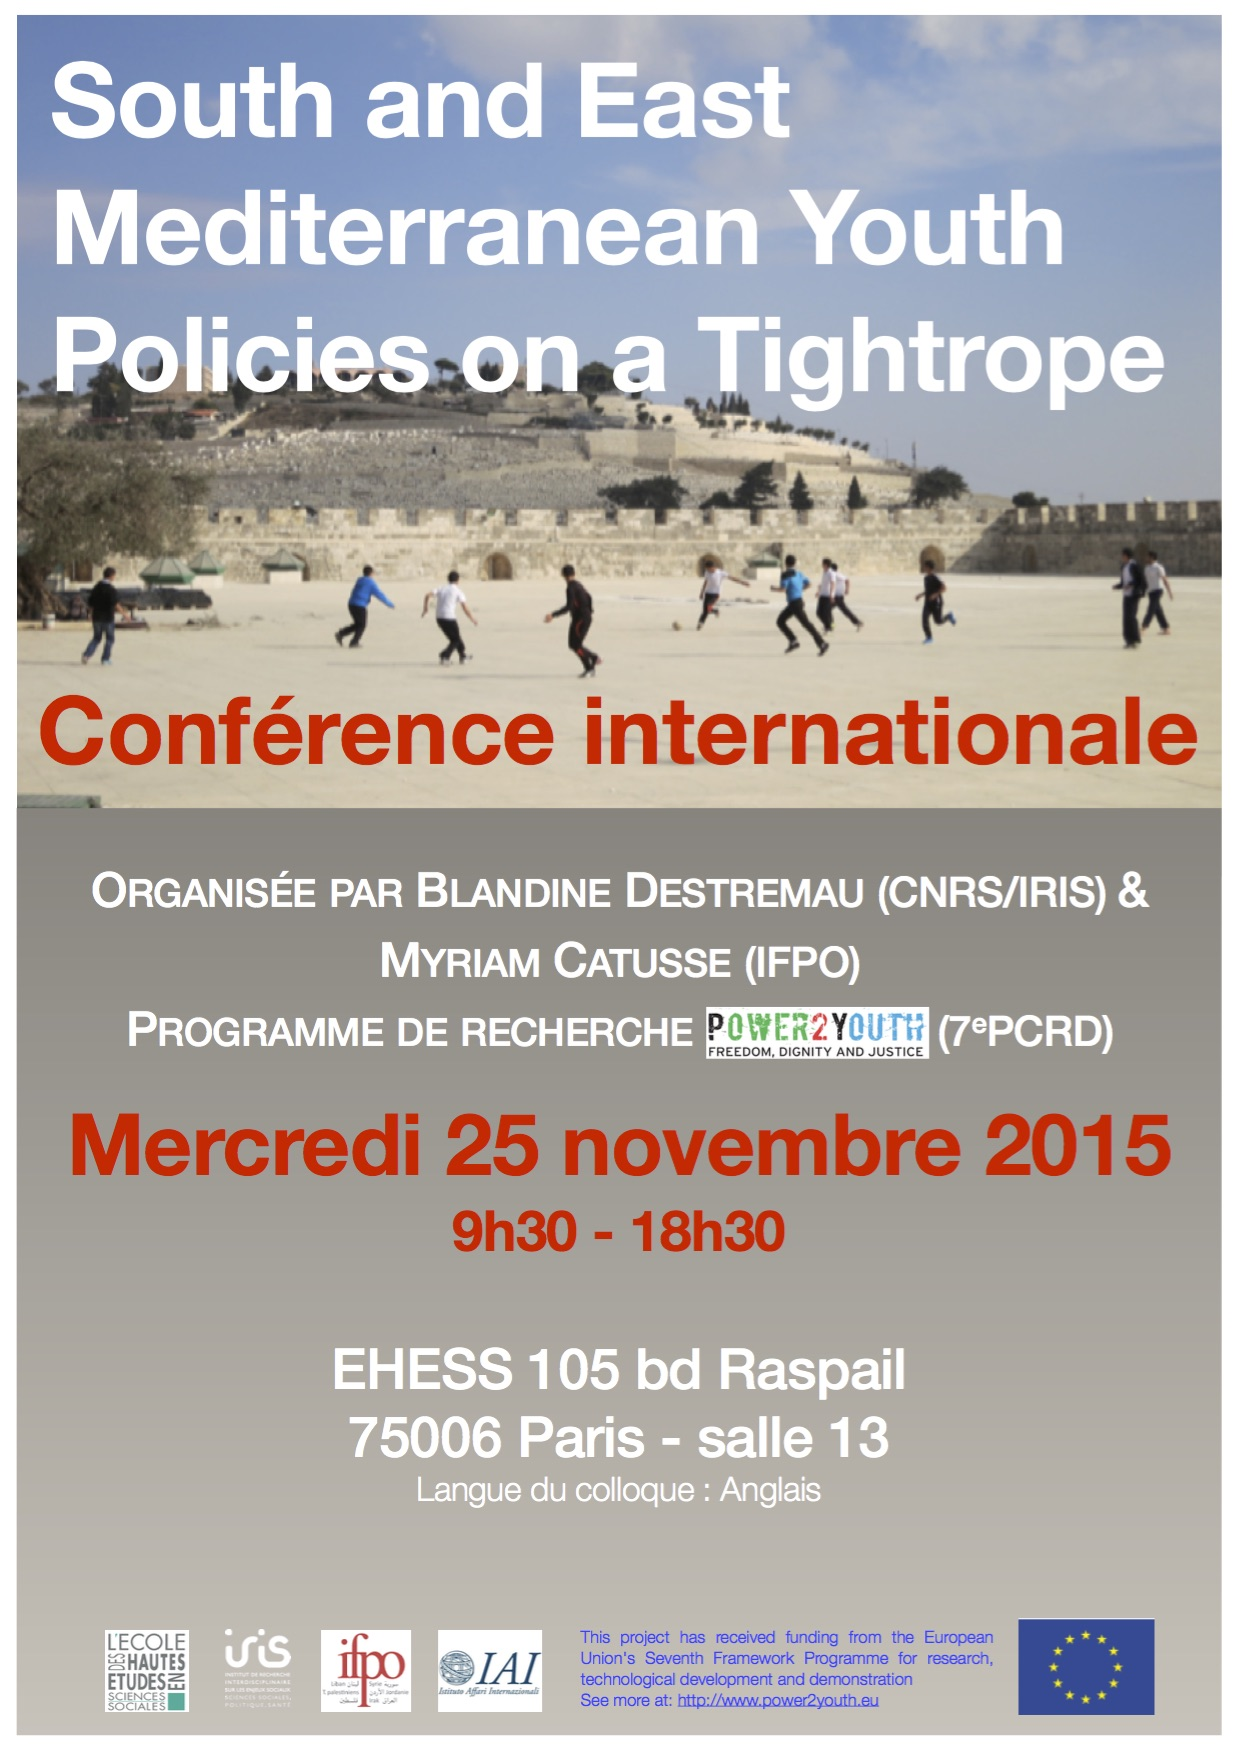 Conférence internationale > South & East Mediterranean Youth Policies on a Tightrope